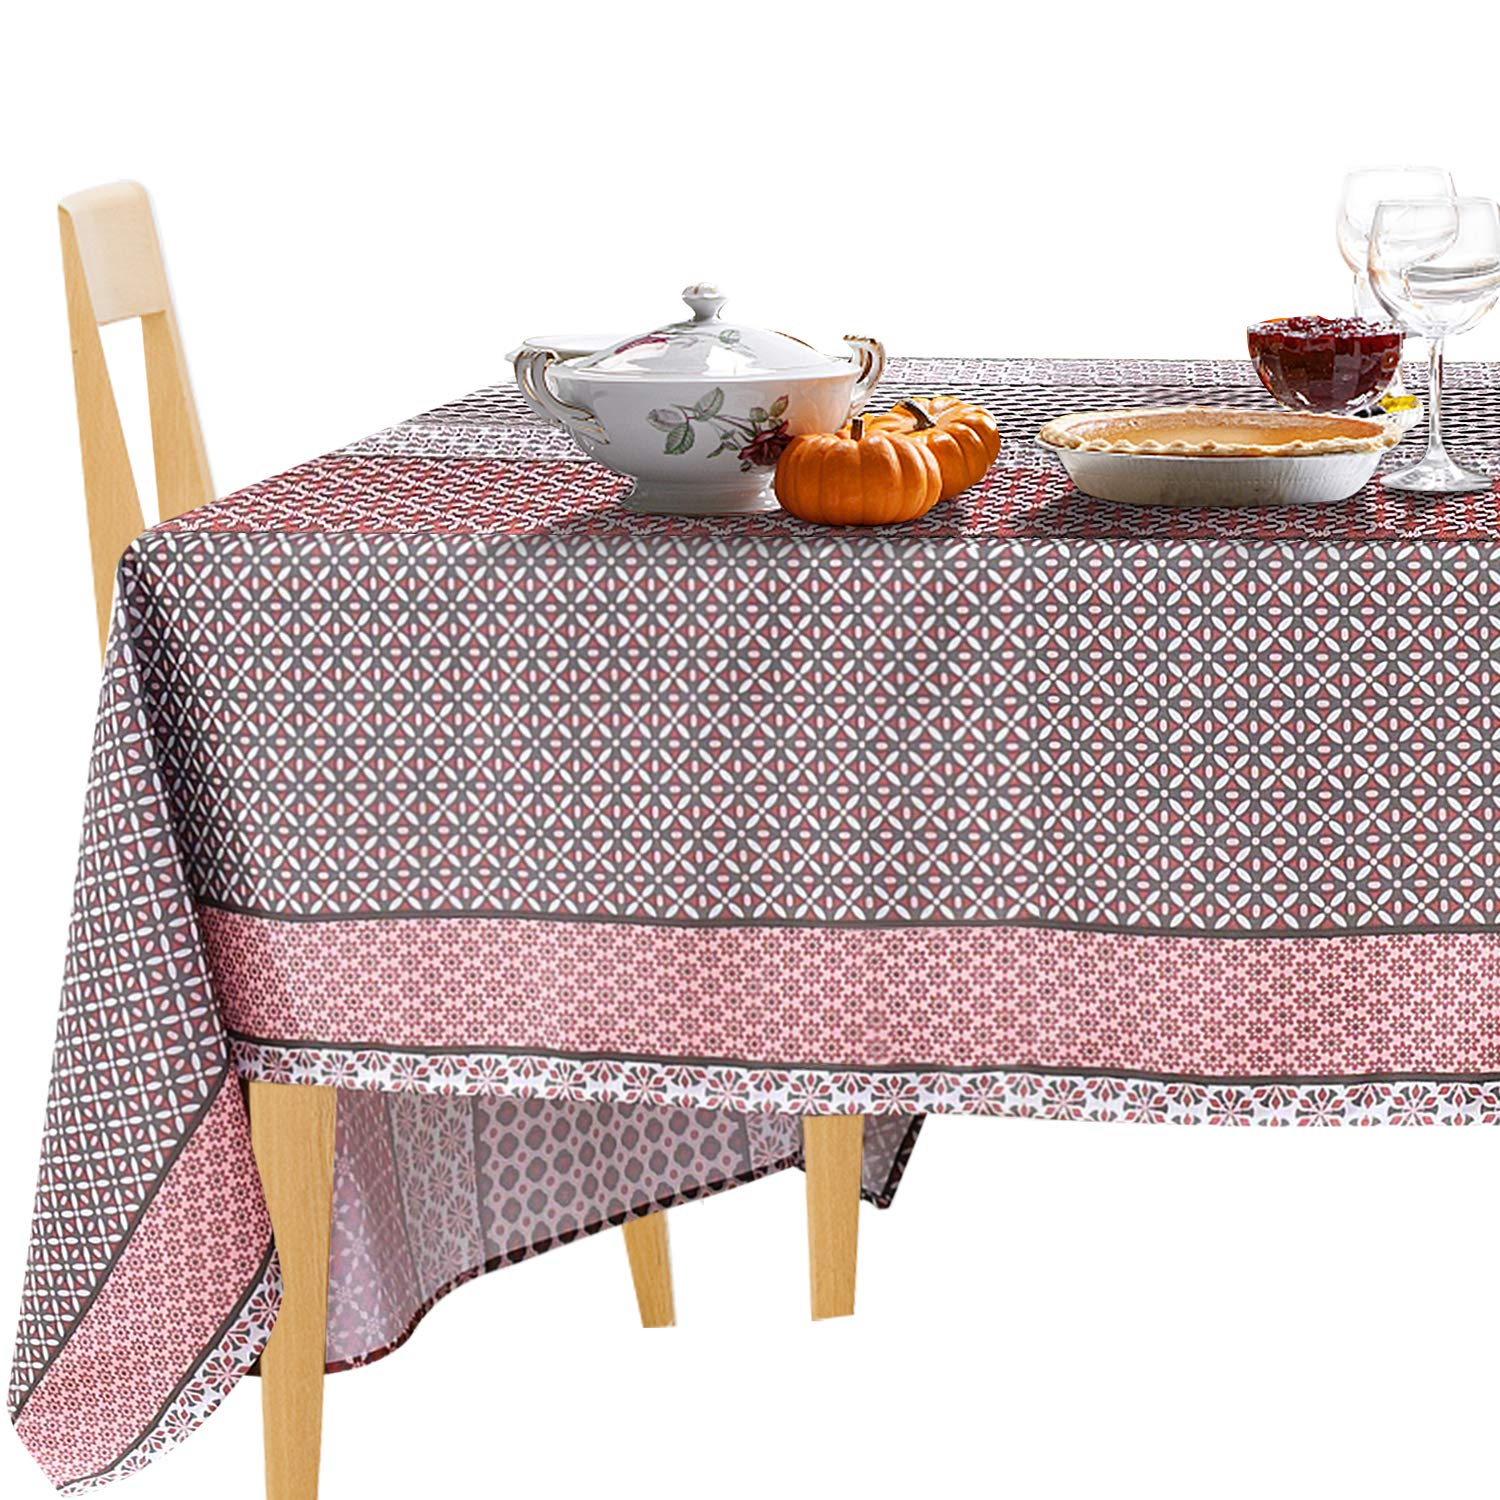 Astounding Jiater Floral Printed Table Cloth Spillproof Polyester Fabric Rectangle Tablecloths 60 X 84 Red Floral Bralicious Painted Fabric Chair Ideas Braliciousco